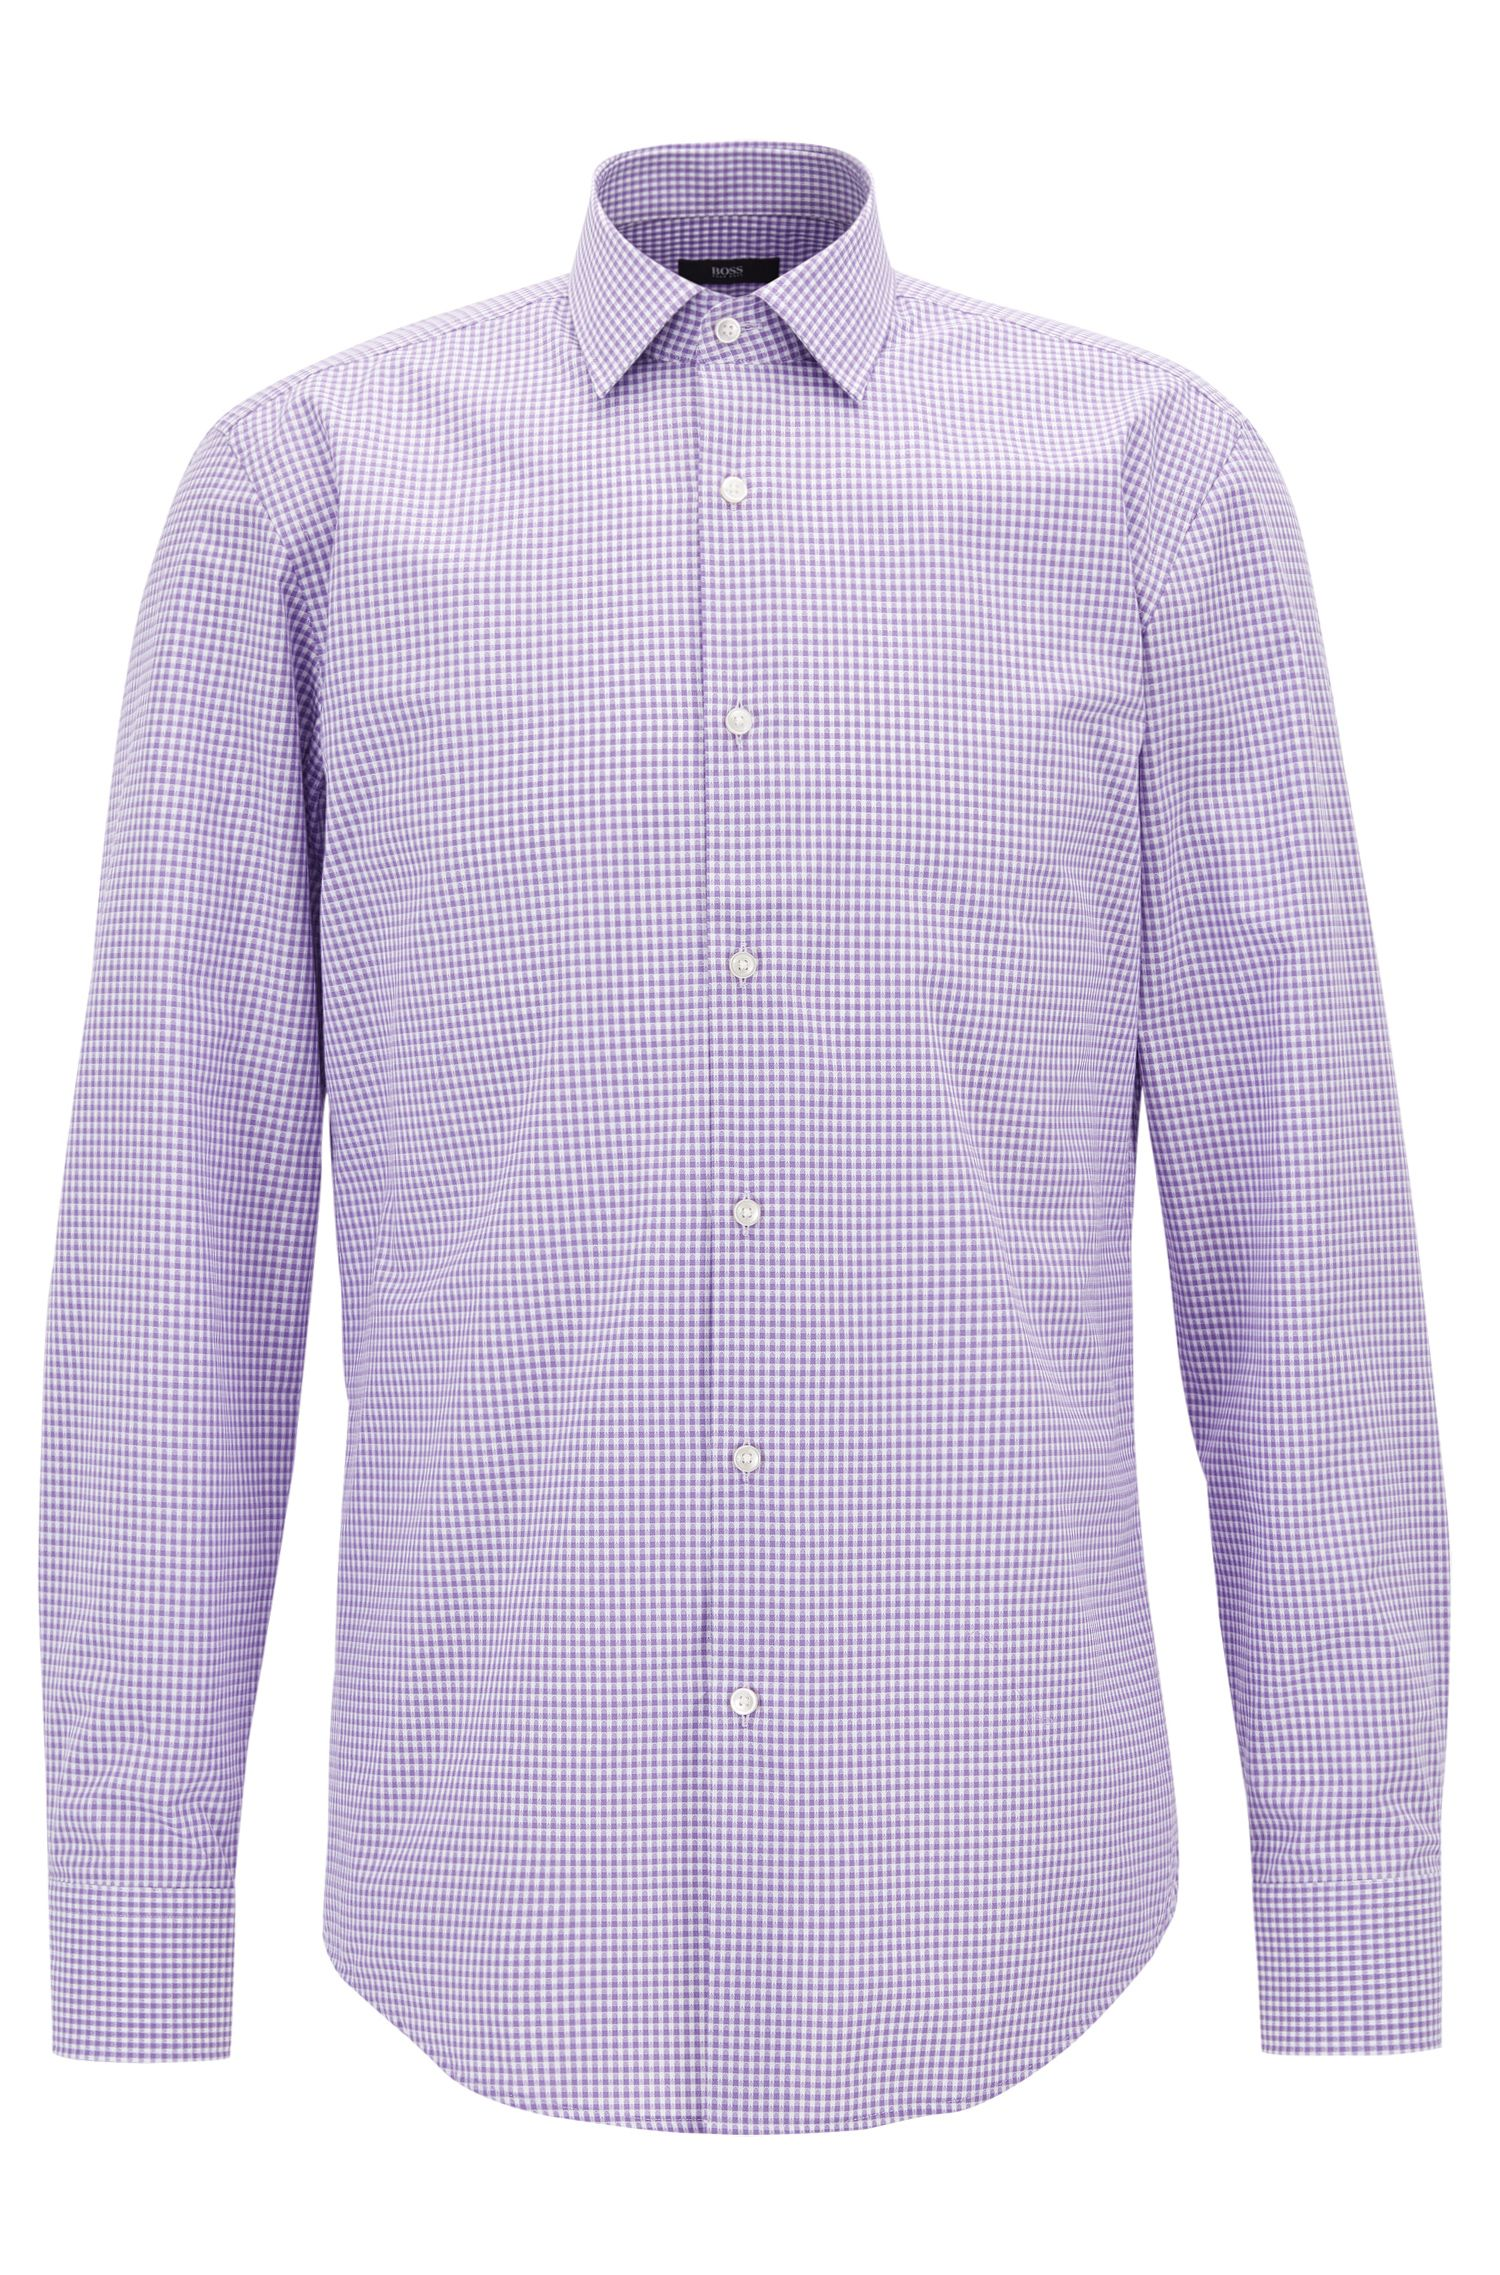 Gingham Cotton Dress Shirt, Slim Fit | Jenno